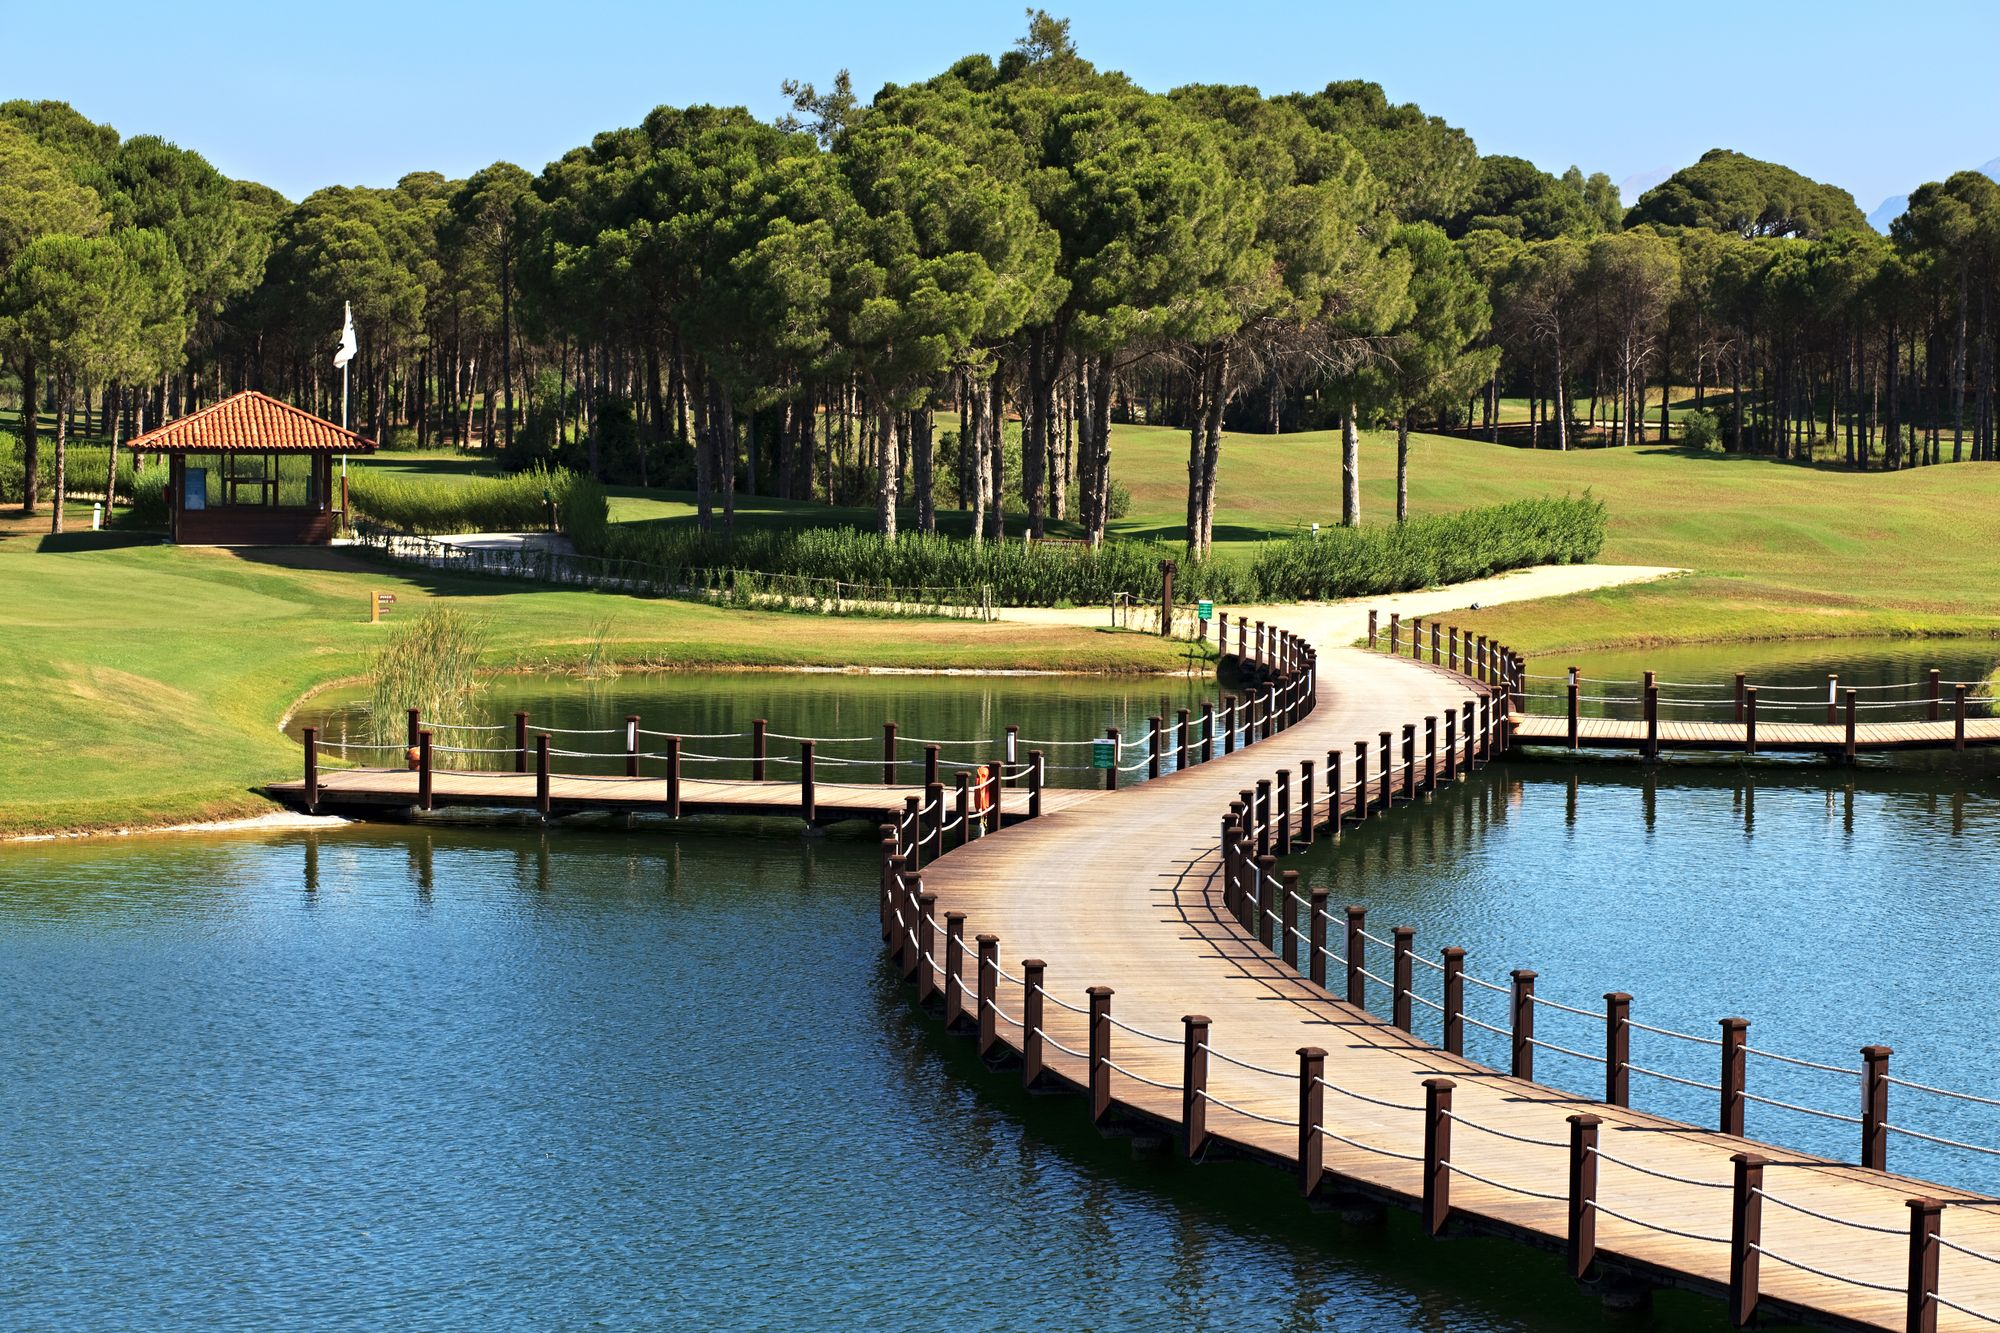 Belek is an important centre for golf